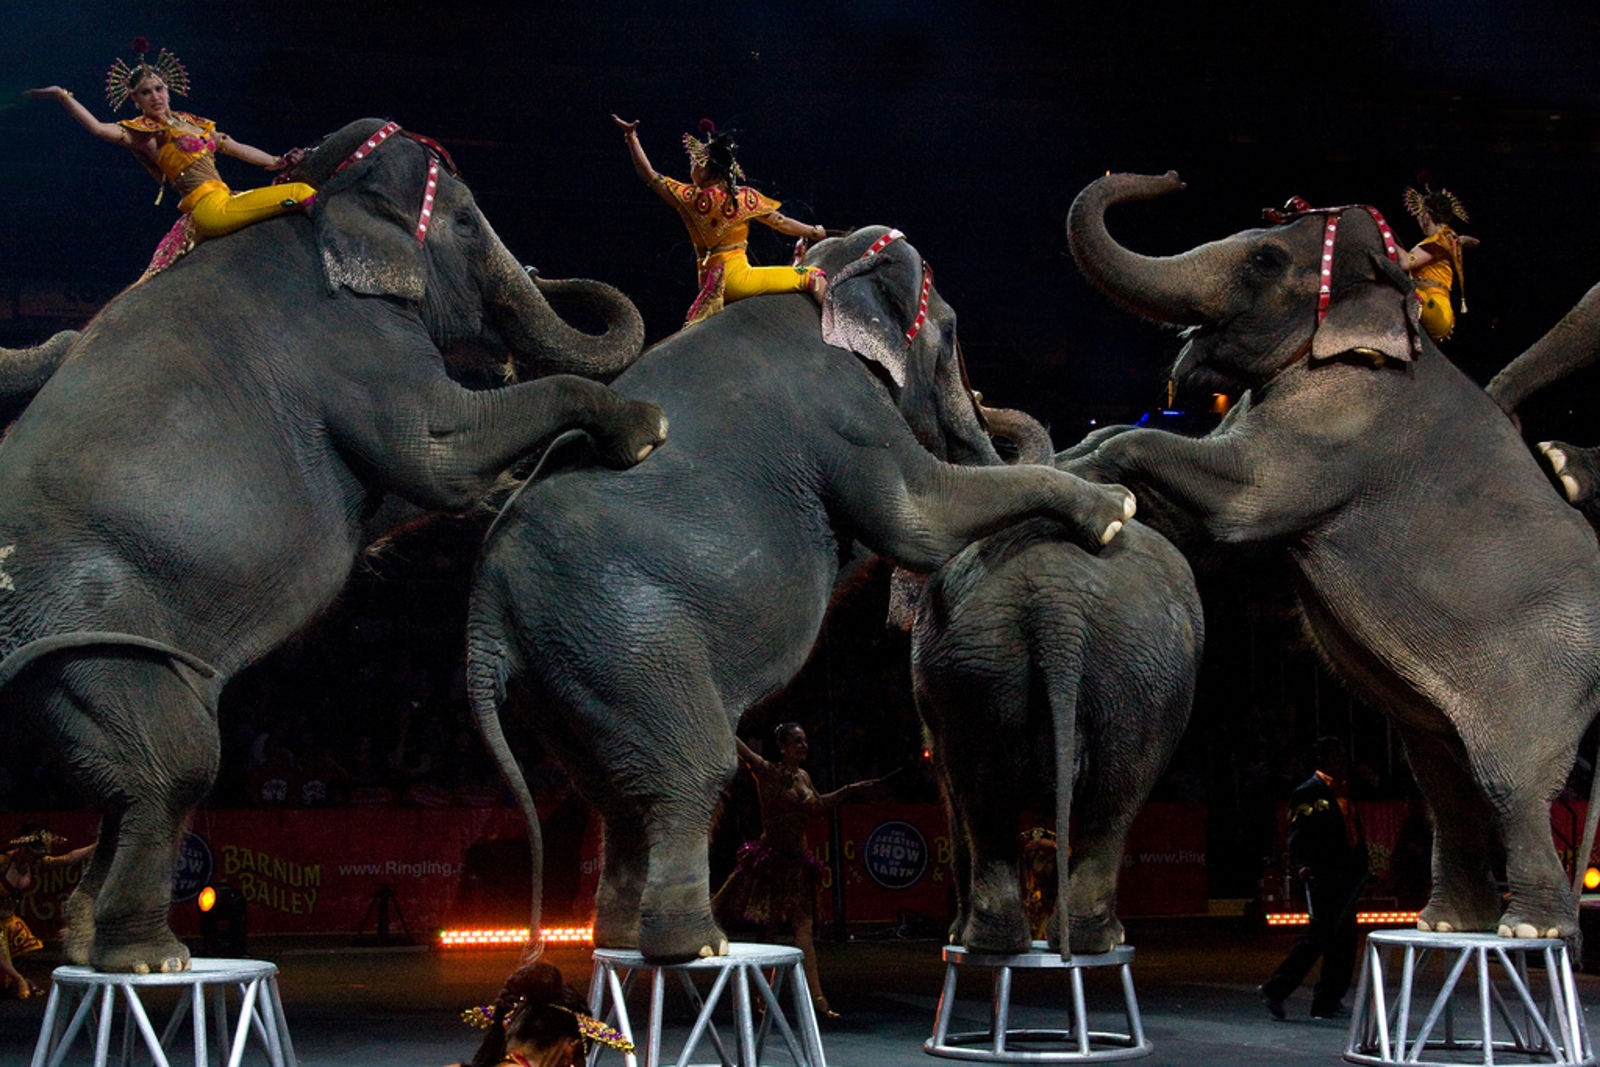 5 Ways You Can Help End the Use of Animals in Circuses